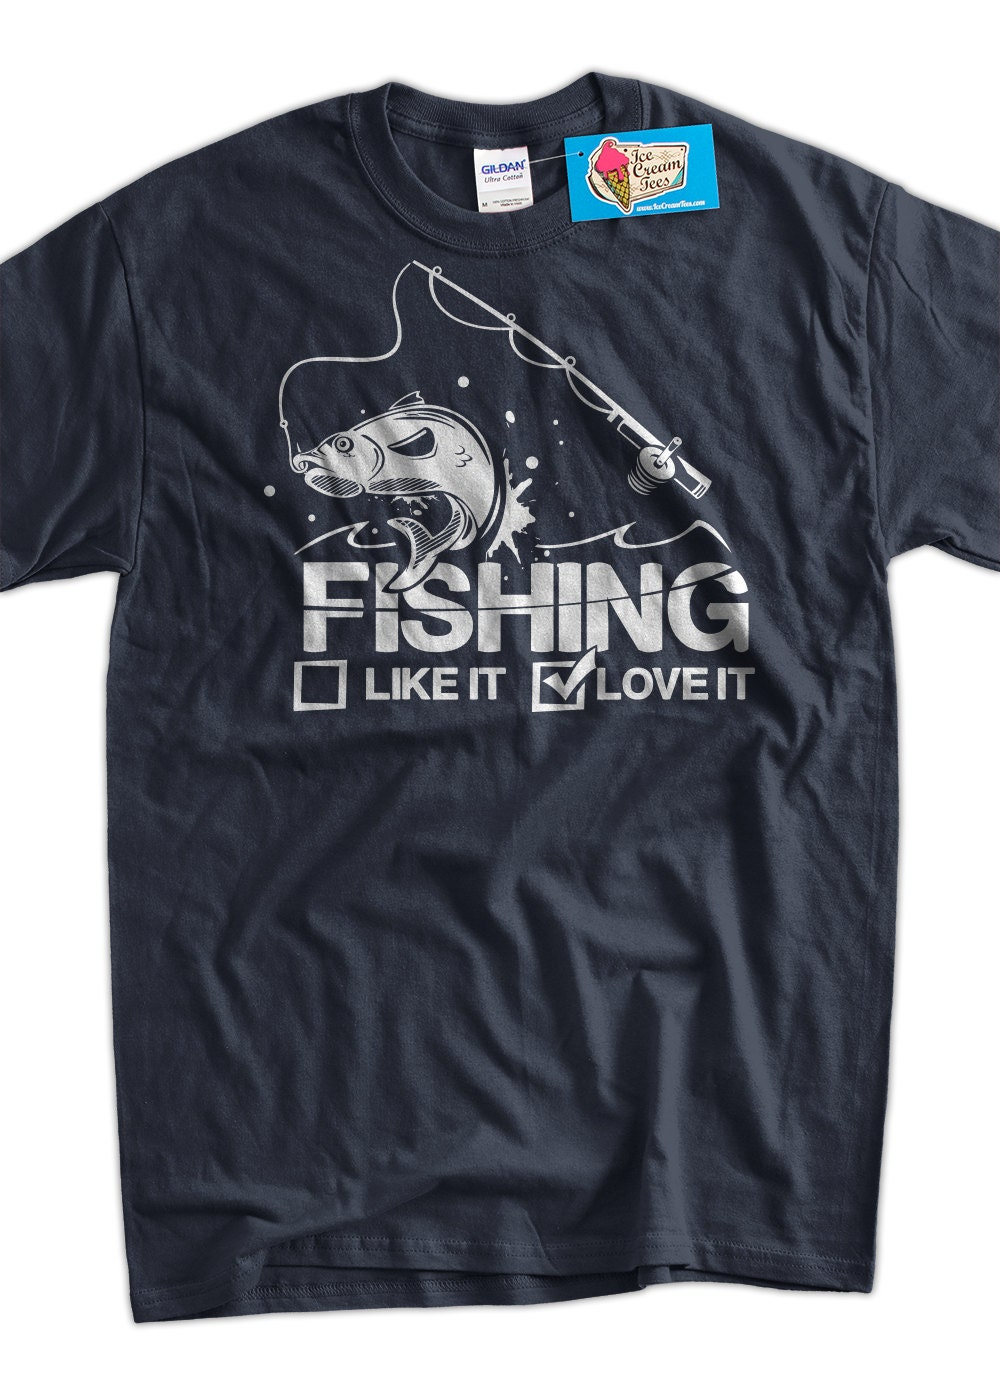 Funny fishing shirt fishing like it or love it t shirt for Funny fishing t shirts